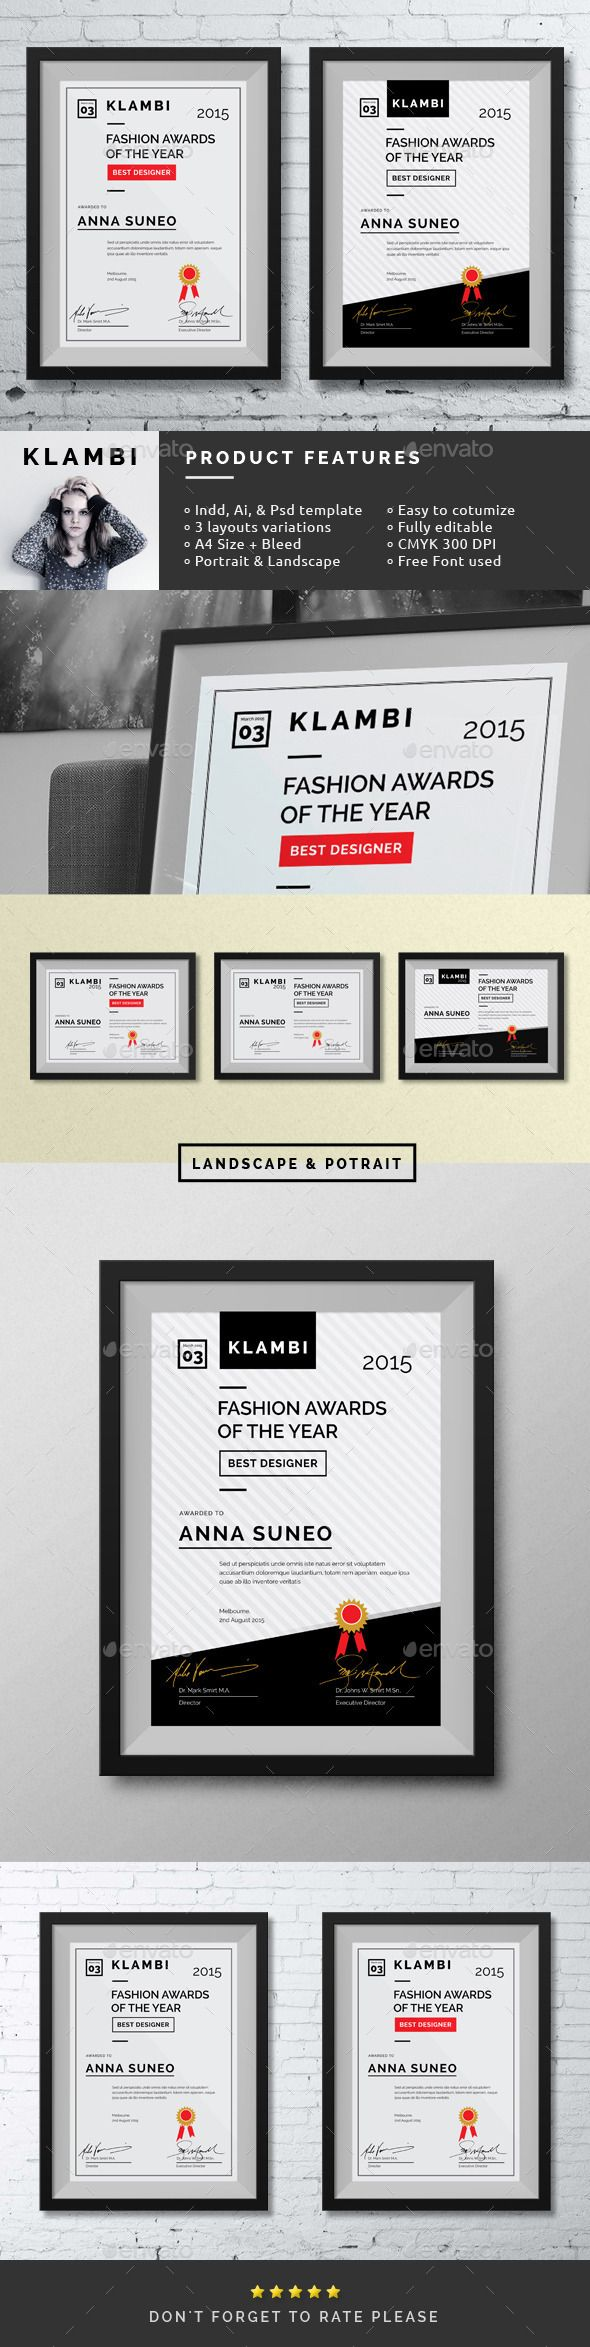 #Fashion Certificate - #Certificates #Stationery Download here: https://graphicriver.net/item/fashion-certificate/10140478?ref=alena994